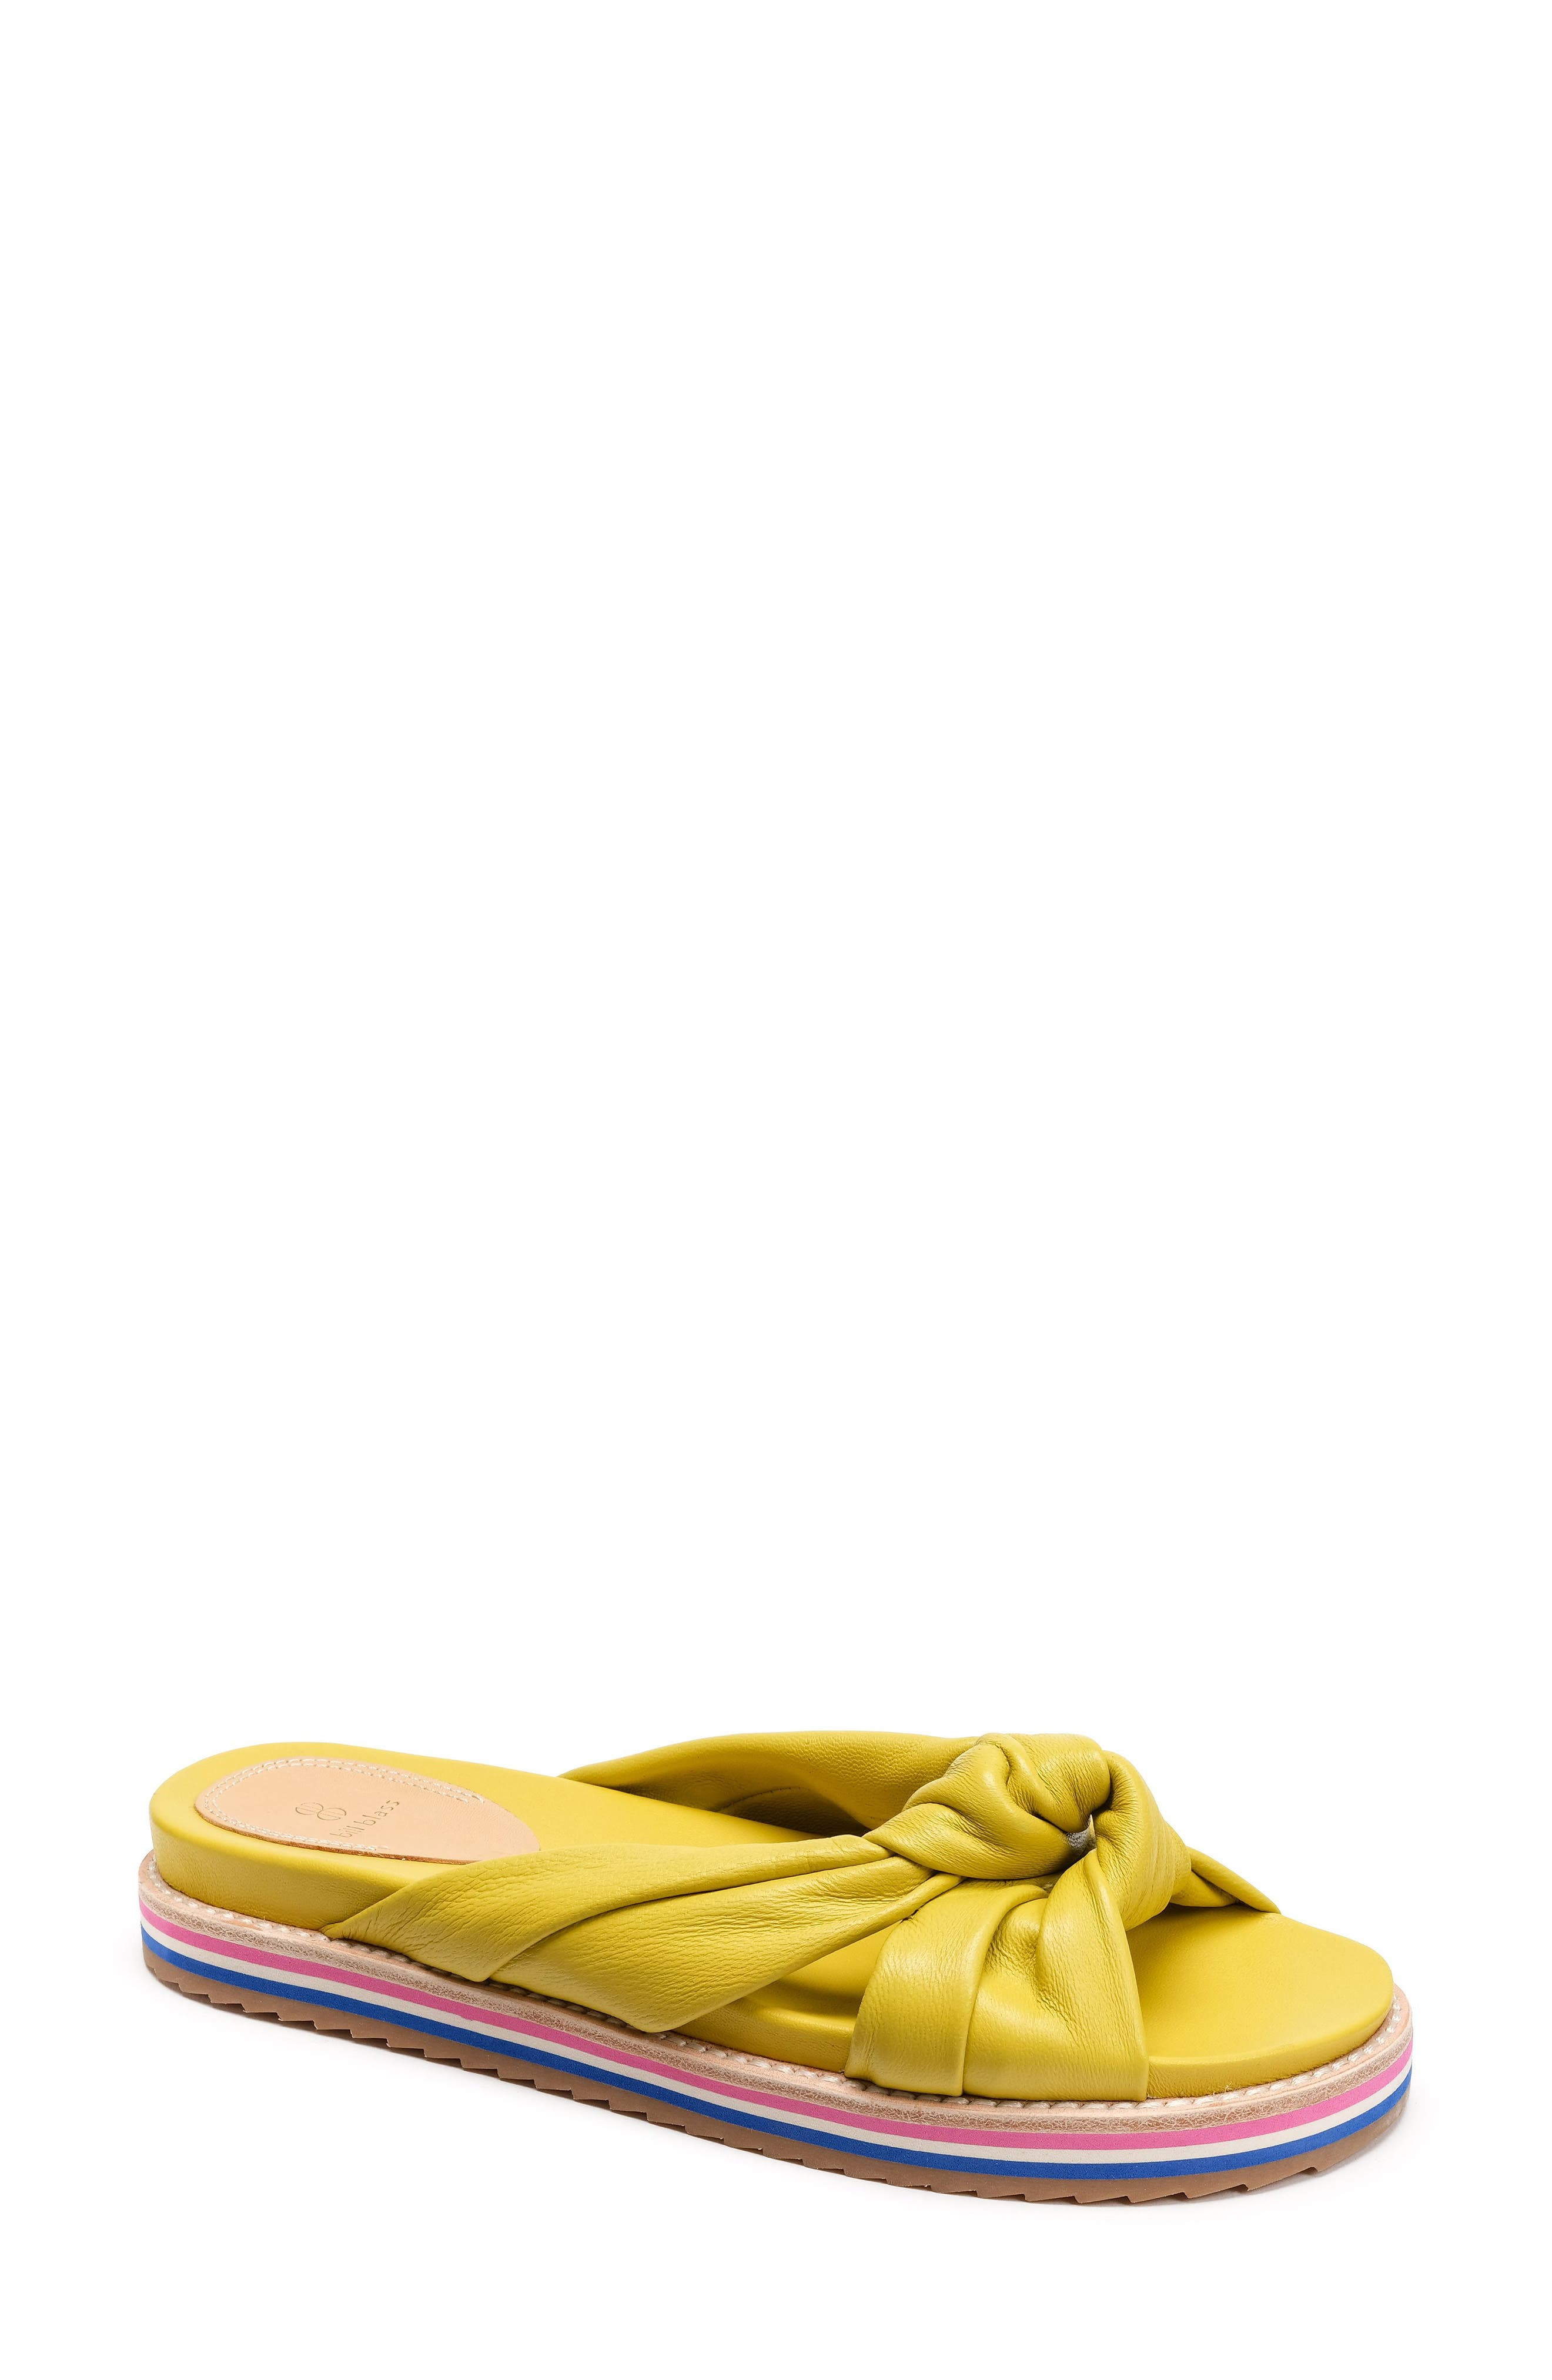 Padget Knotted Slide Sandal,                         Main,                         color, Yellow